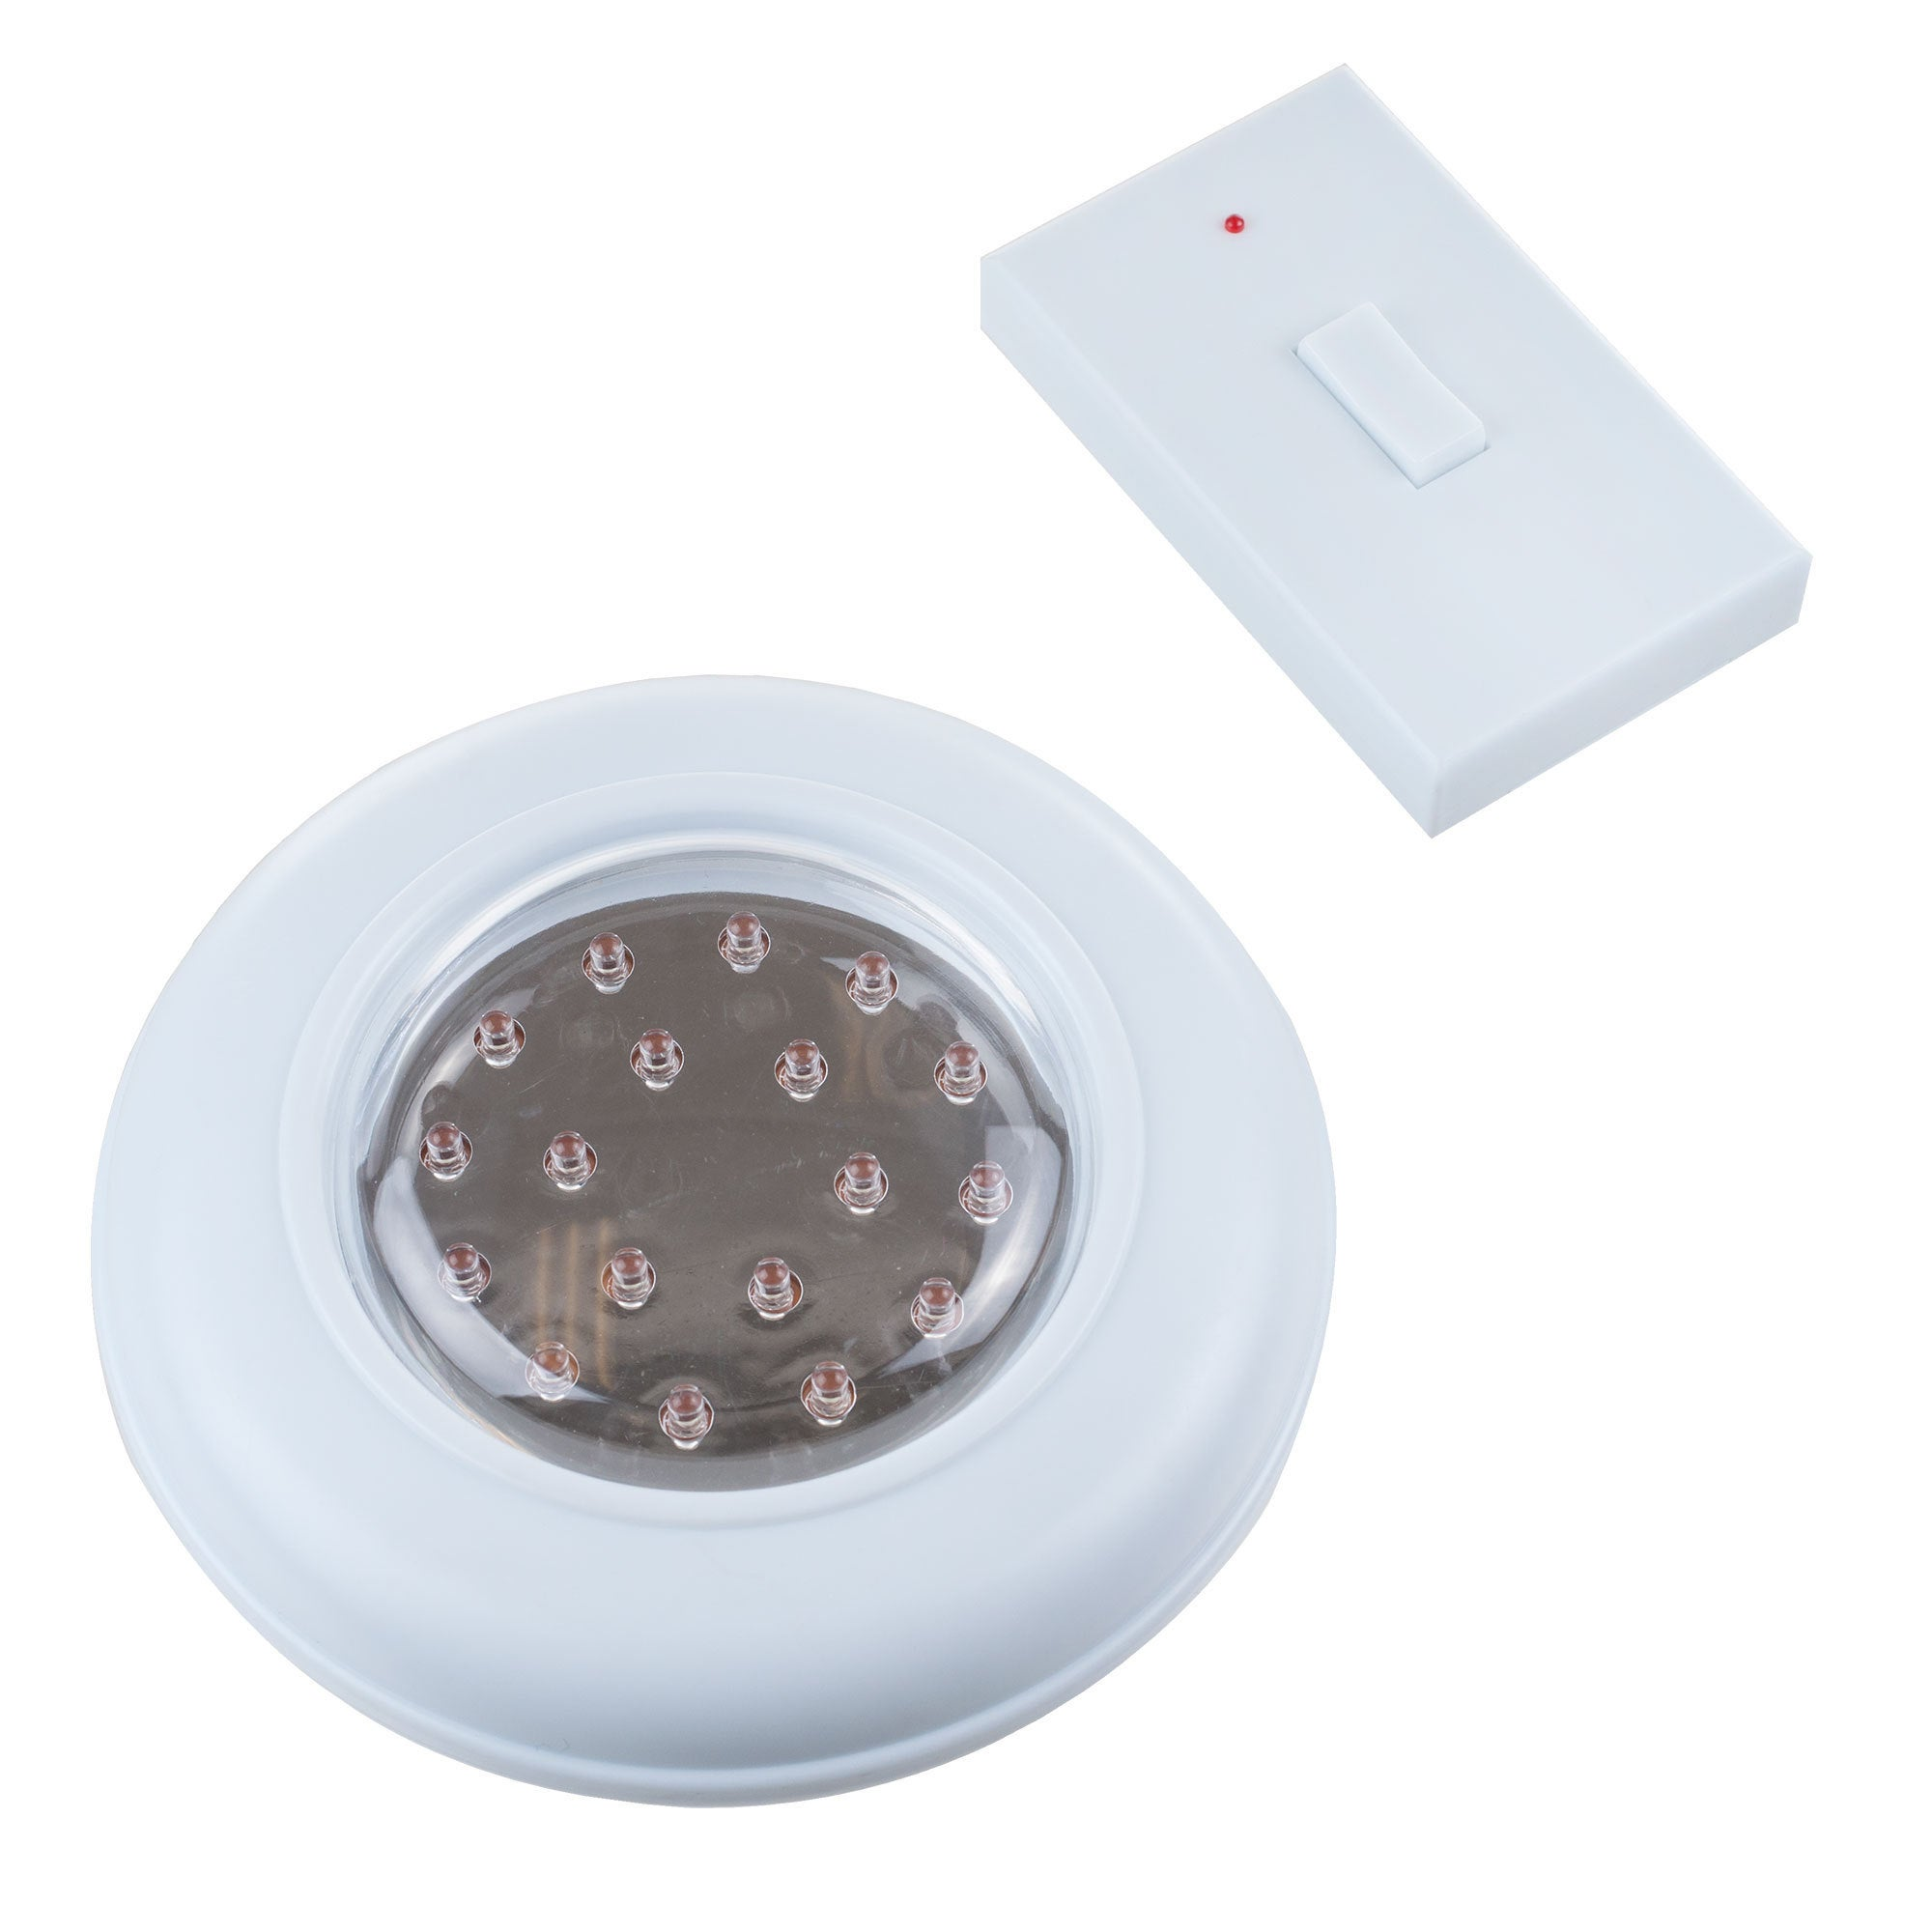 Cordless ceilingwall light with remote control light switch free cordless ceilingwall light with remote control light switch free shipping on orders over 45 overstock 20473437 aloadofball Choice Image